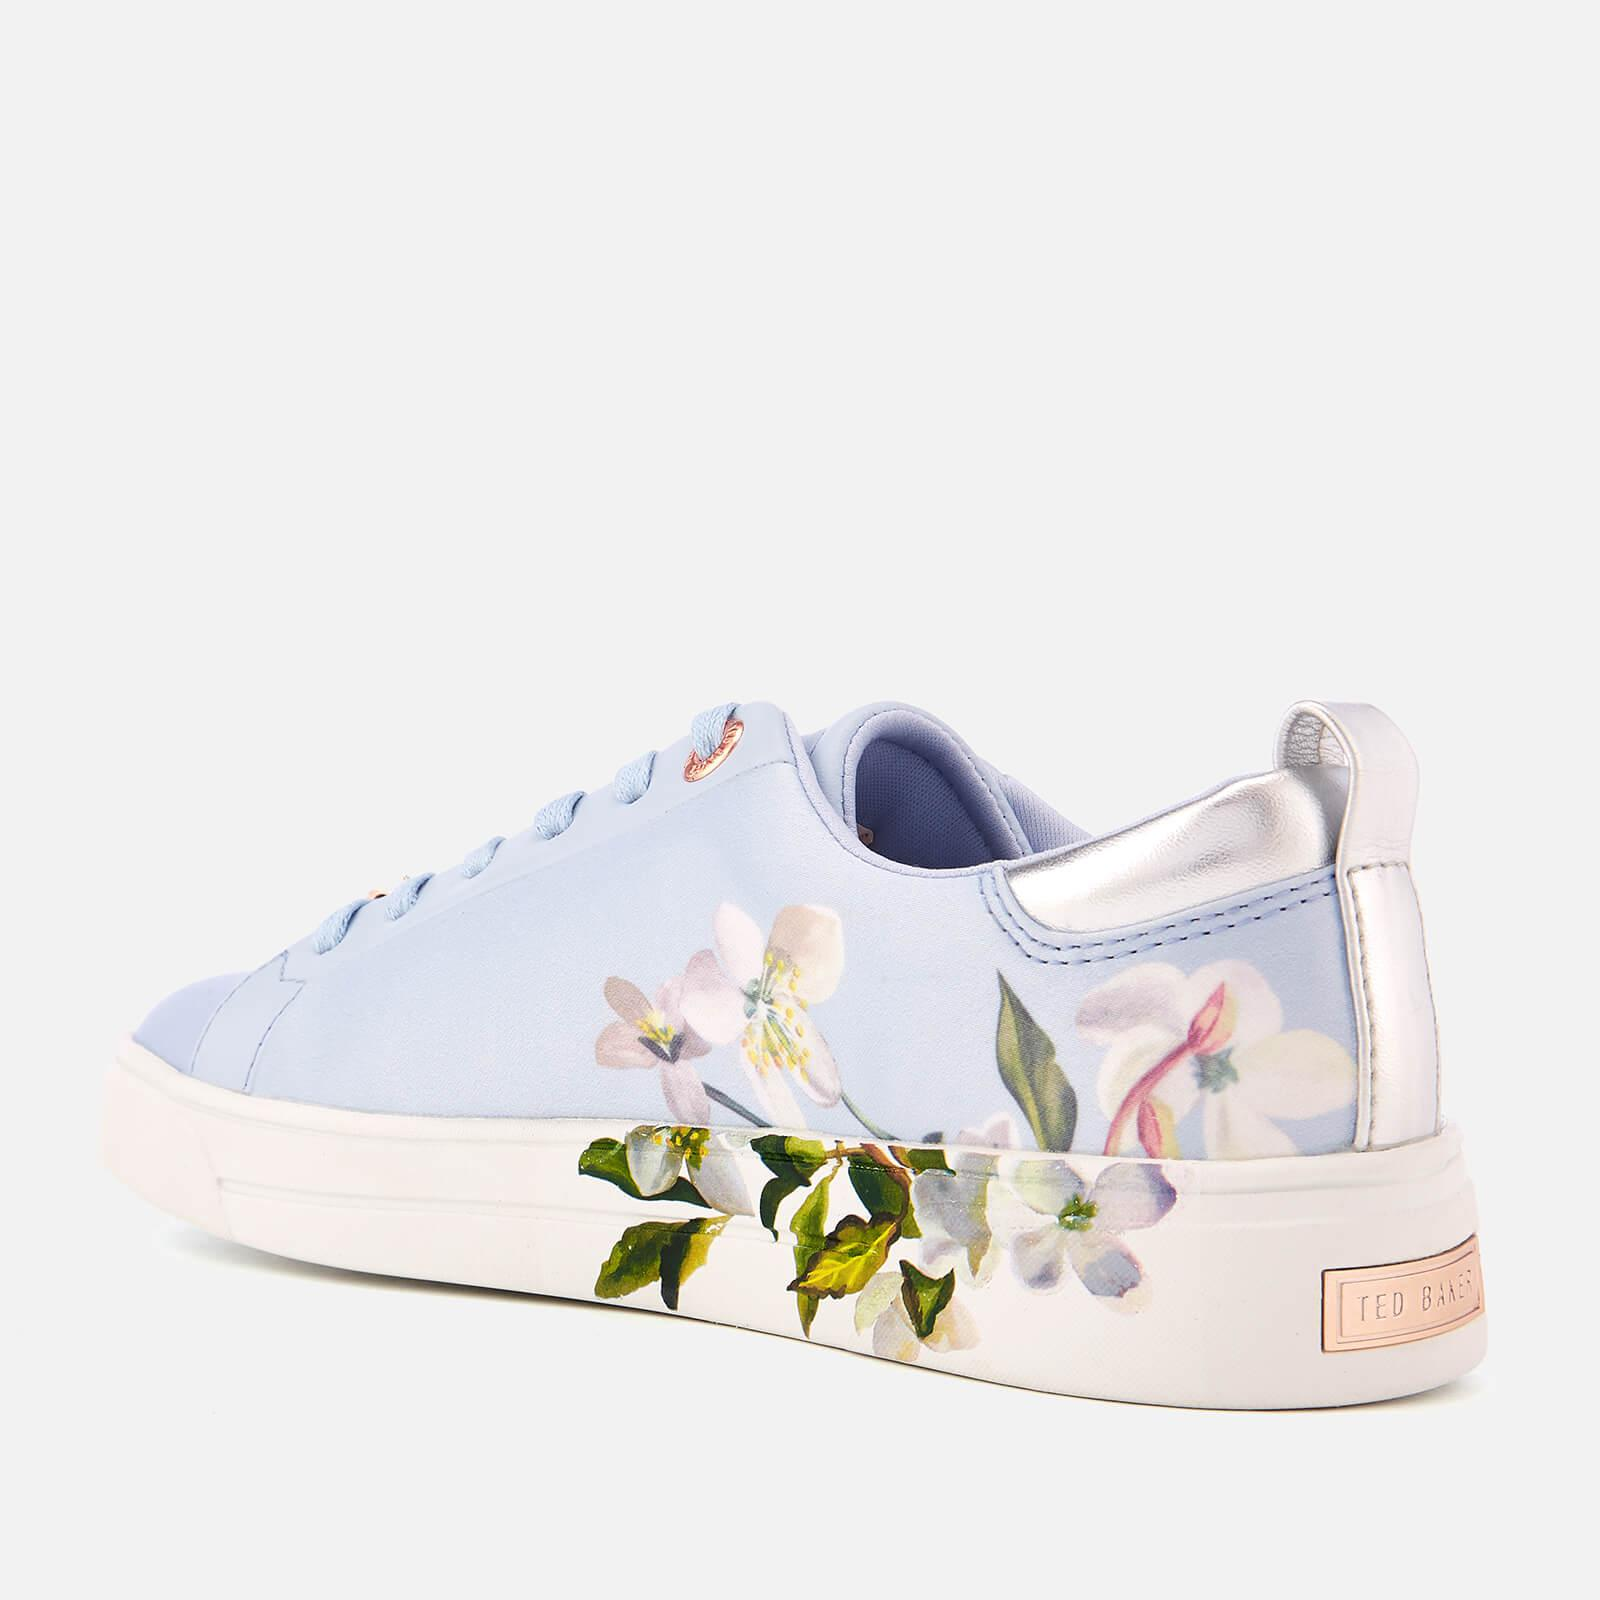 Ted Baker Lace Orosa Floral Low Top